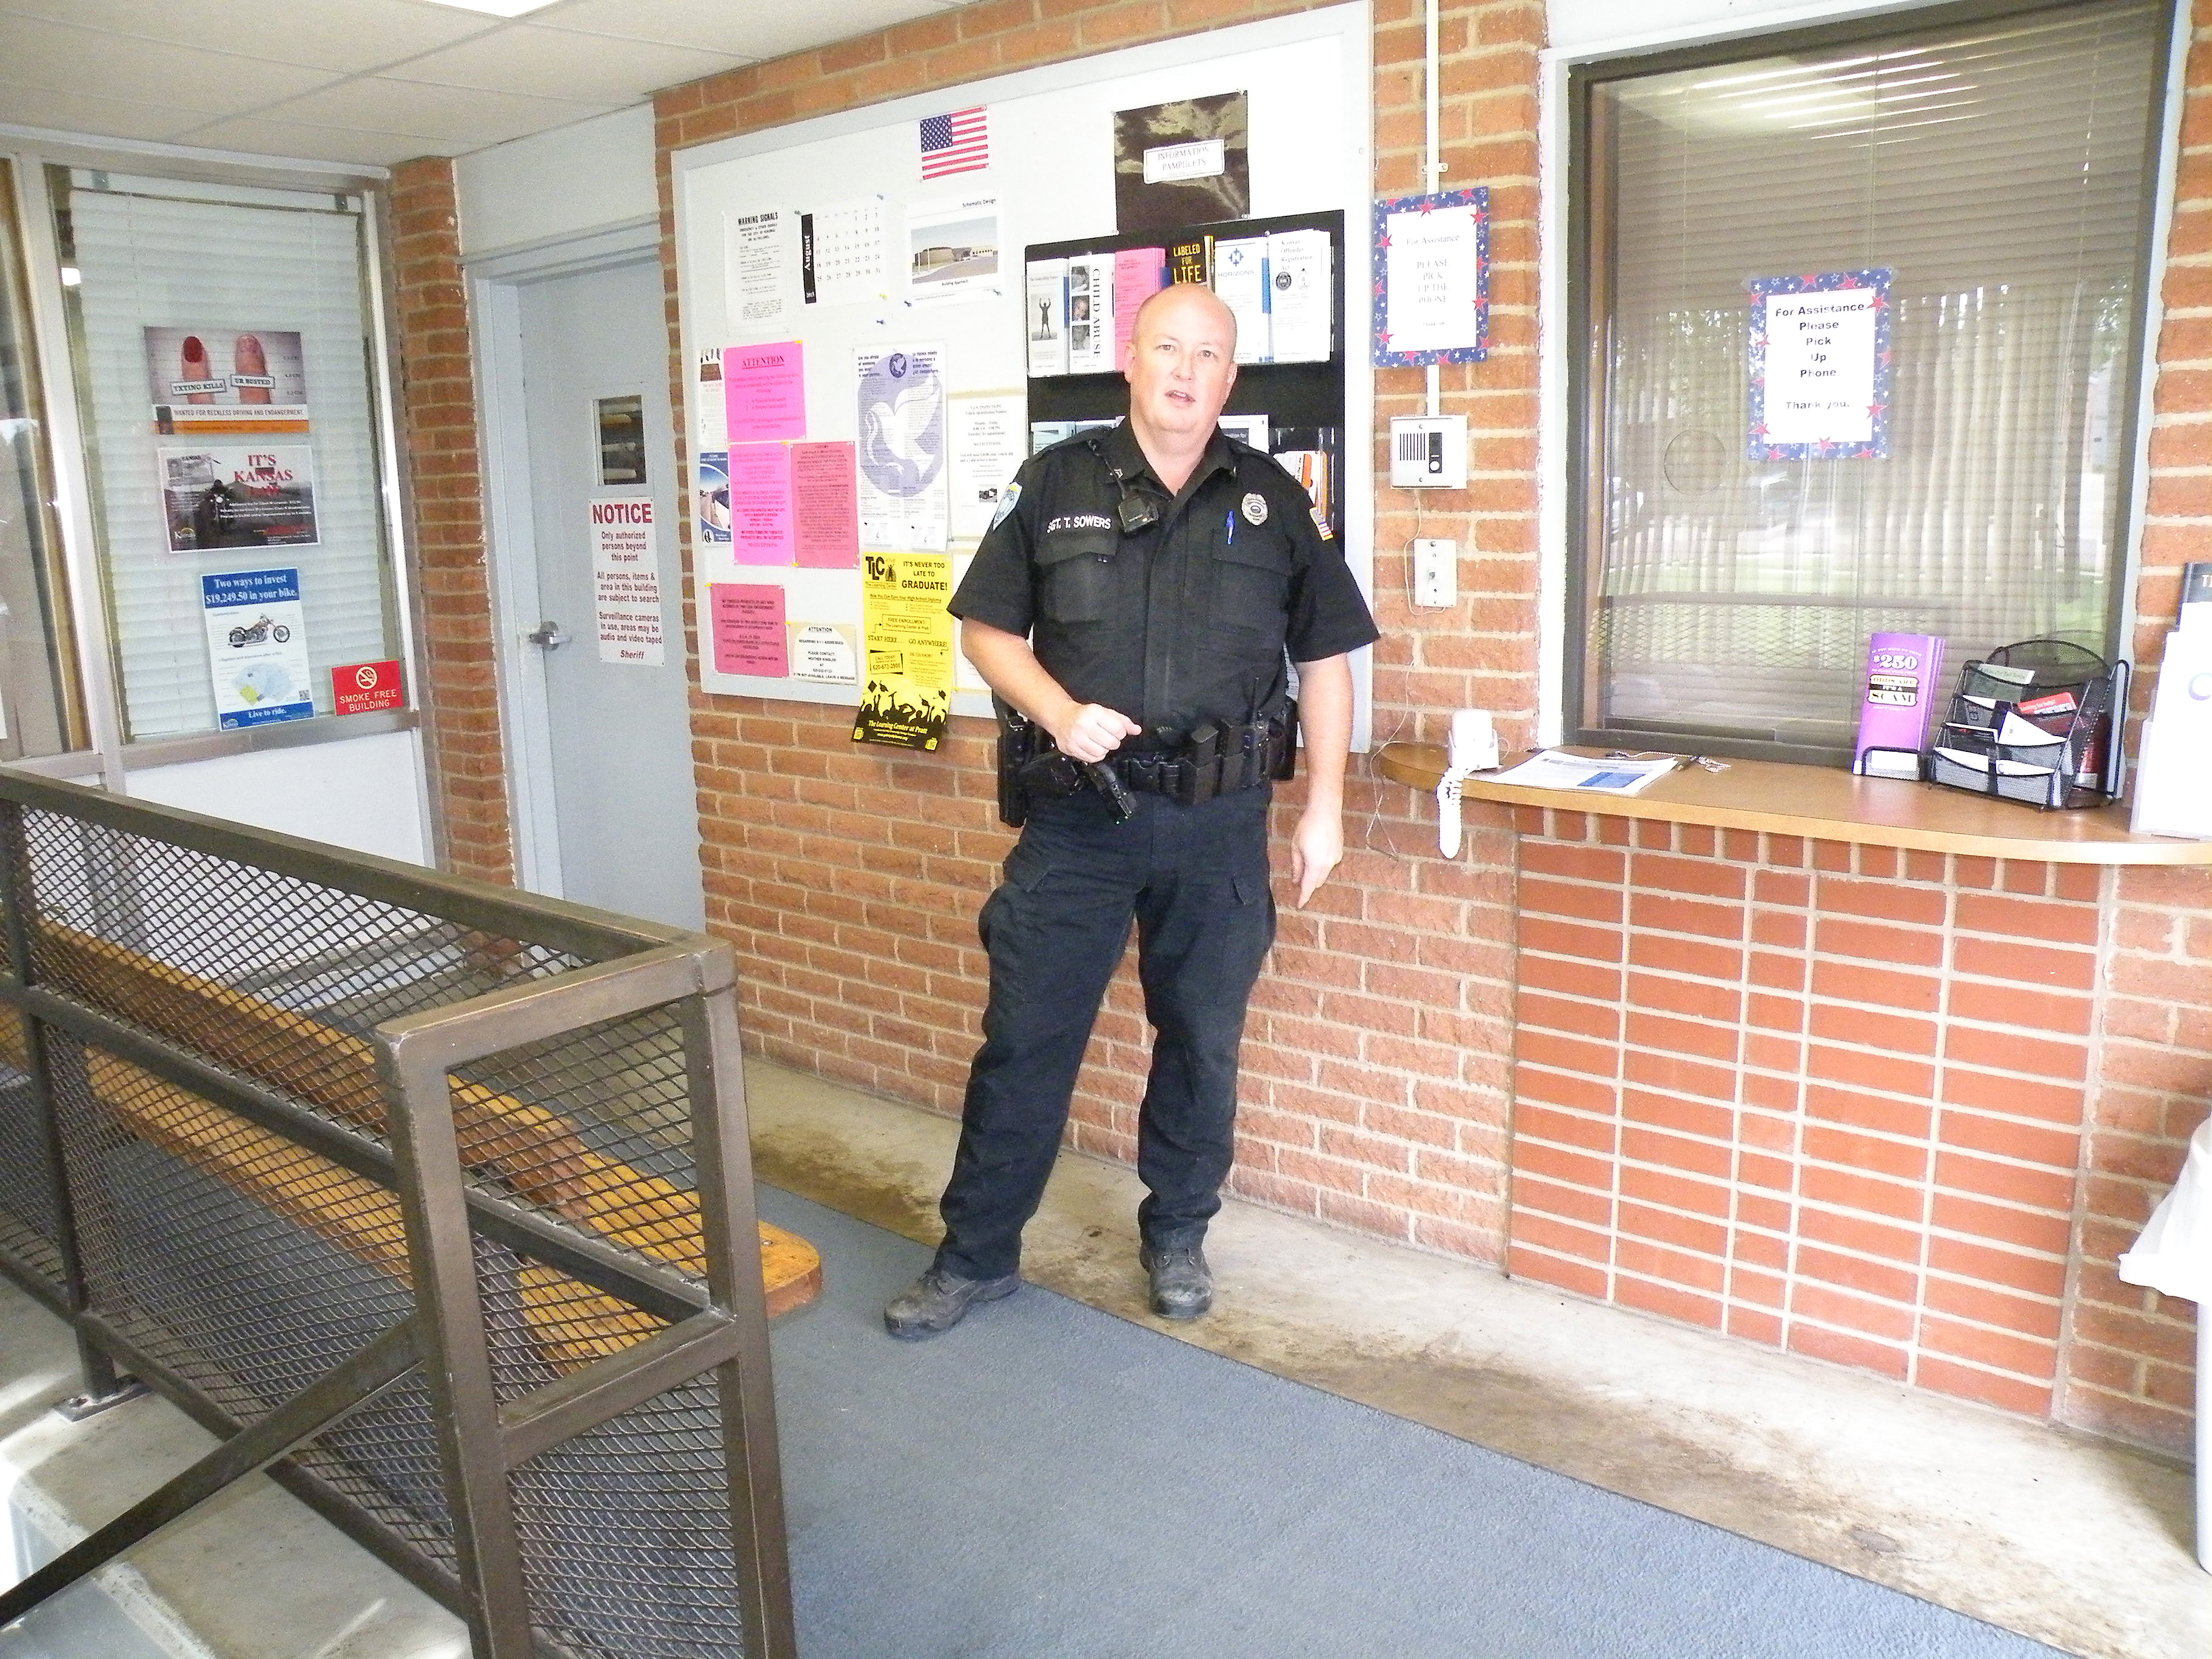 A uniformed police officer standing in front of a bulletin board